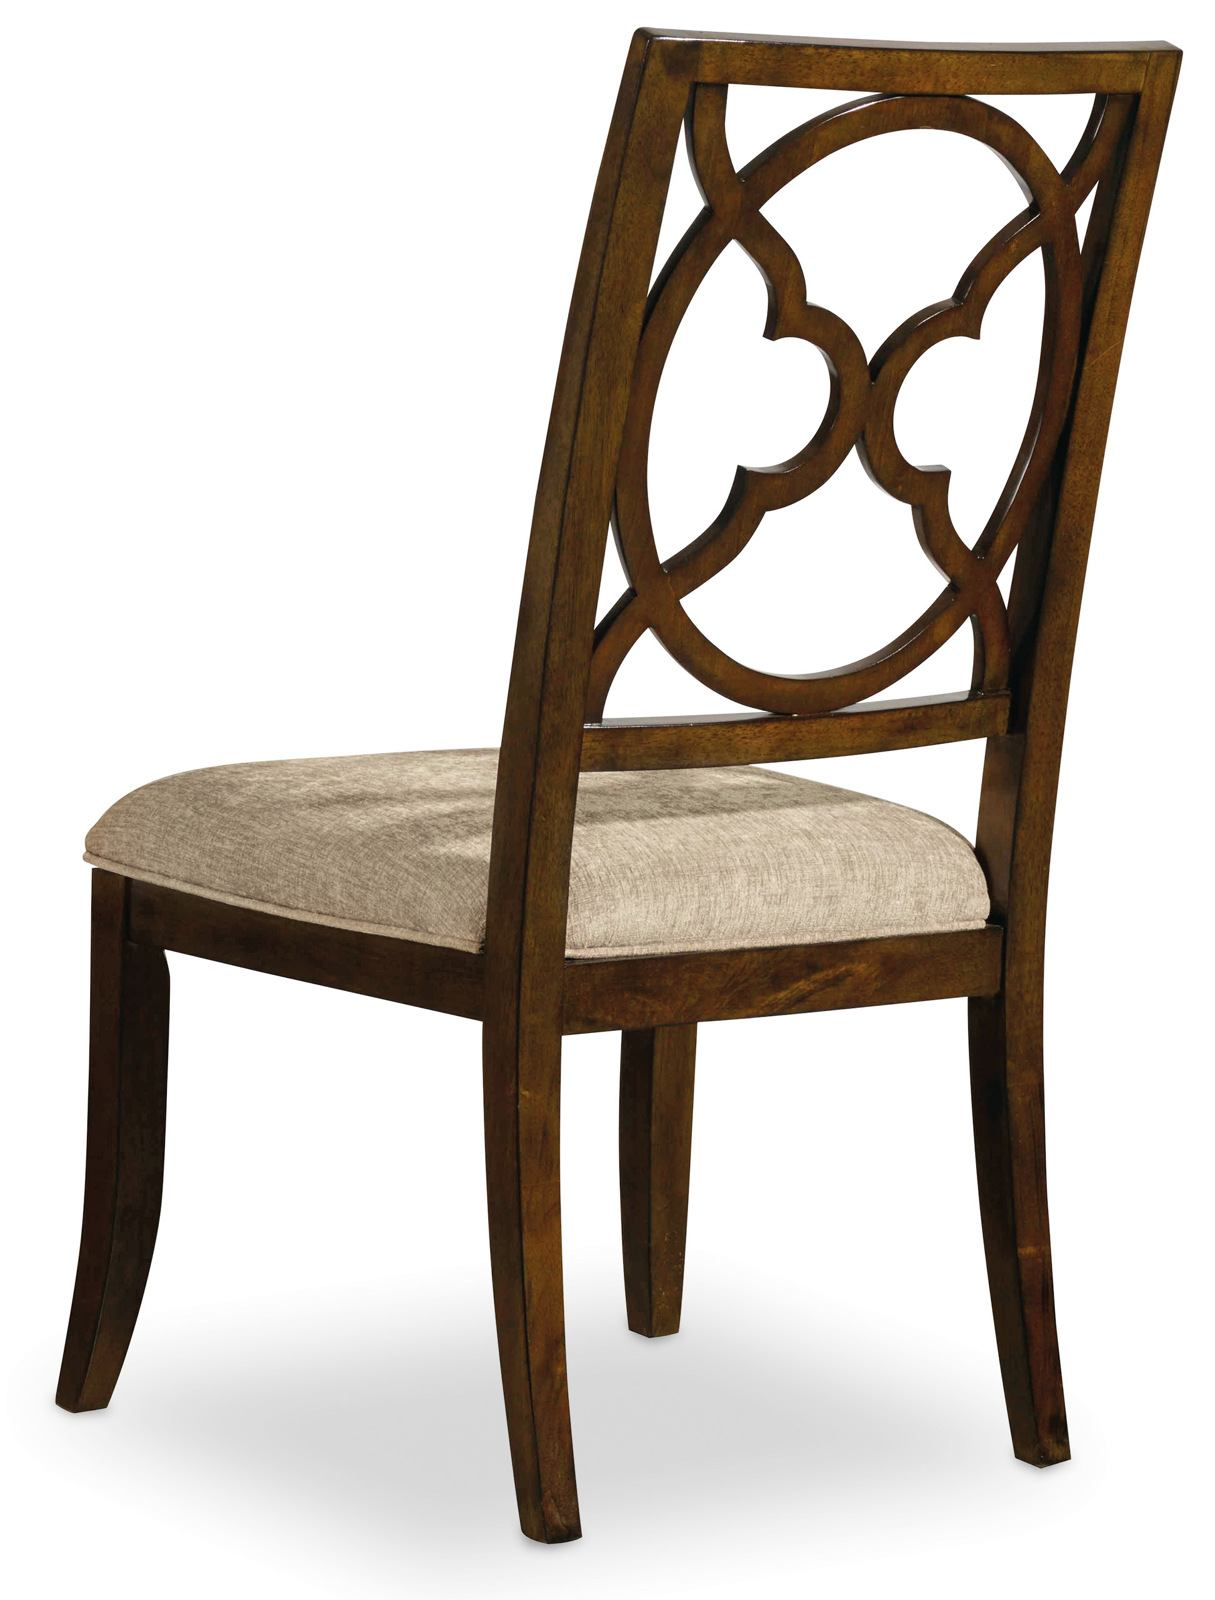 Hooker Furniture Skyline Fretback Side Chair in Cathedral Cherry (Set of 2)